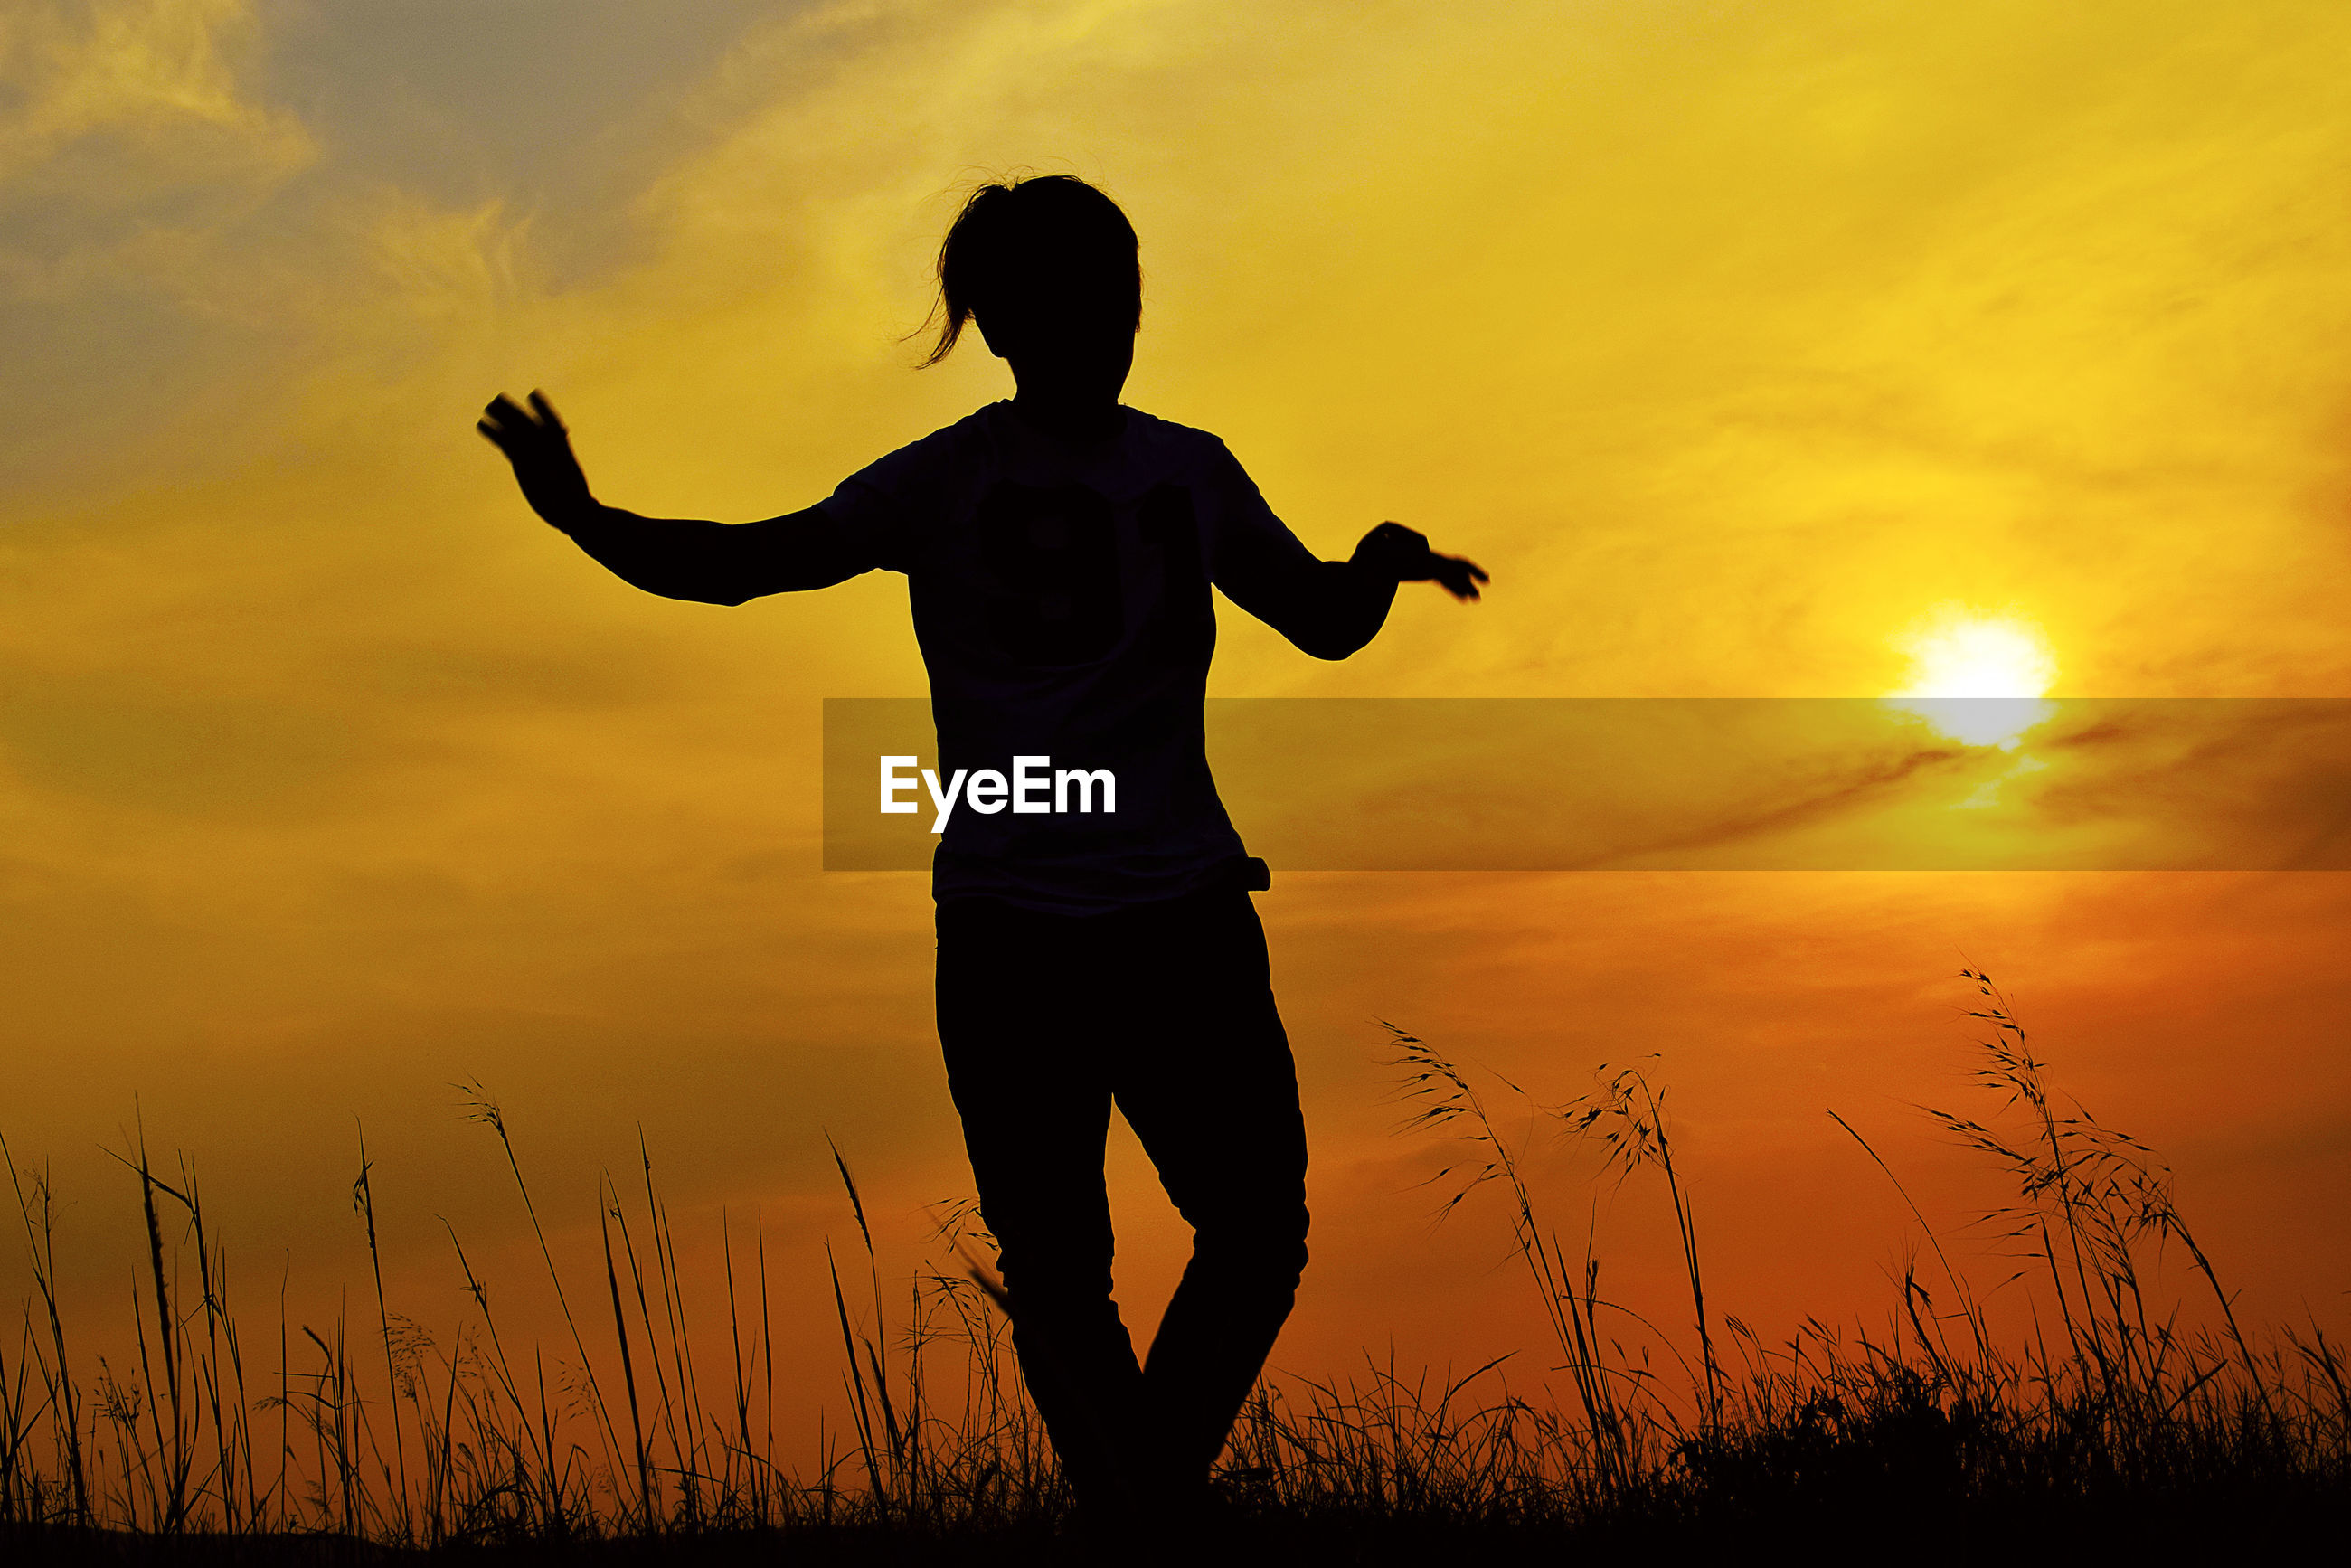 Silhouette woman dancing on land against sky during sunset